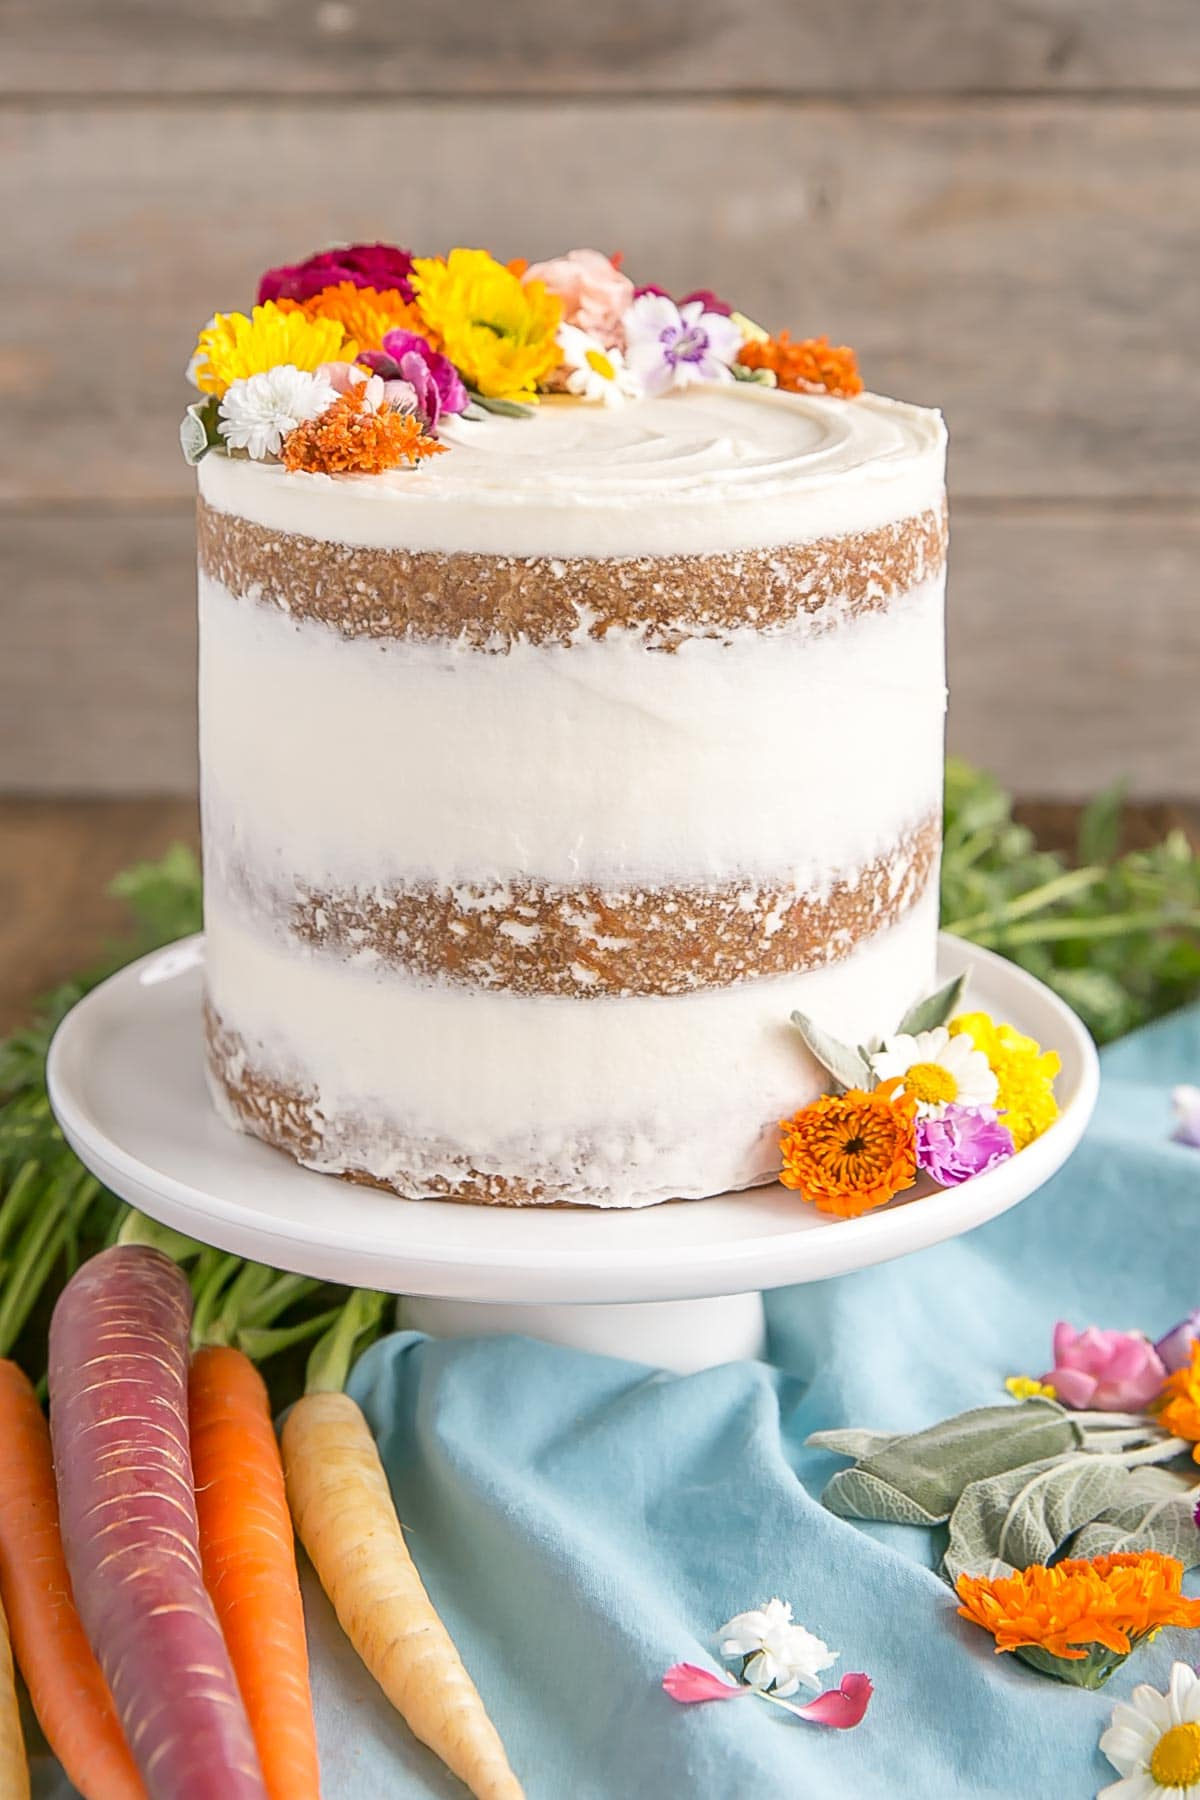 Decorating Carrot Cake